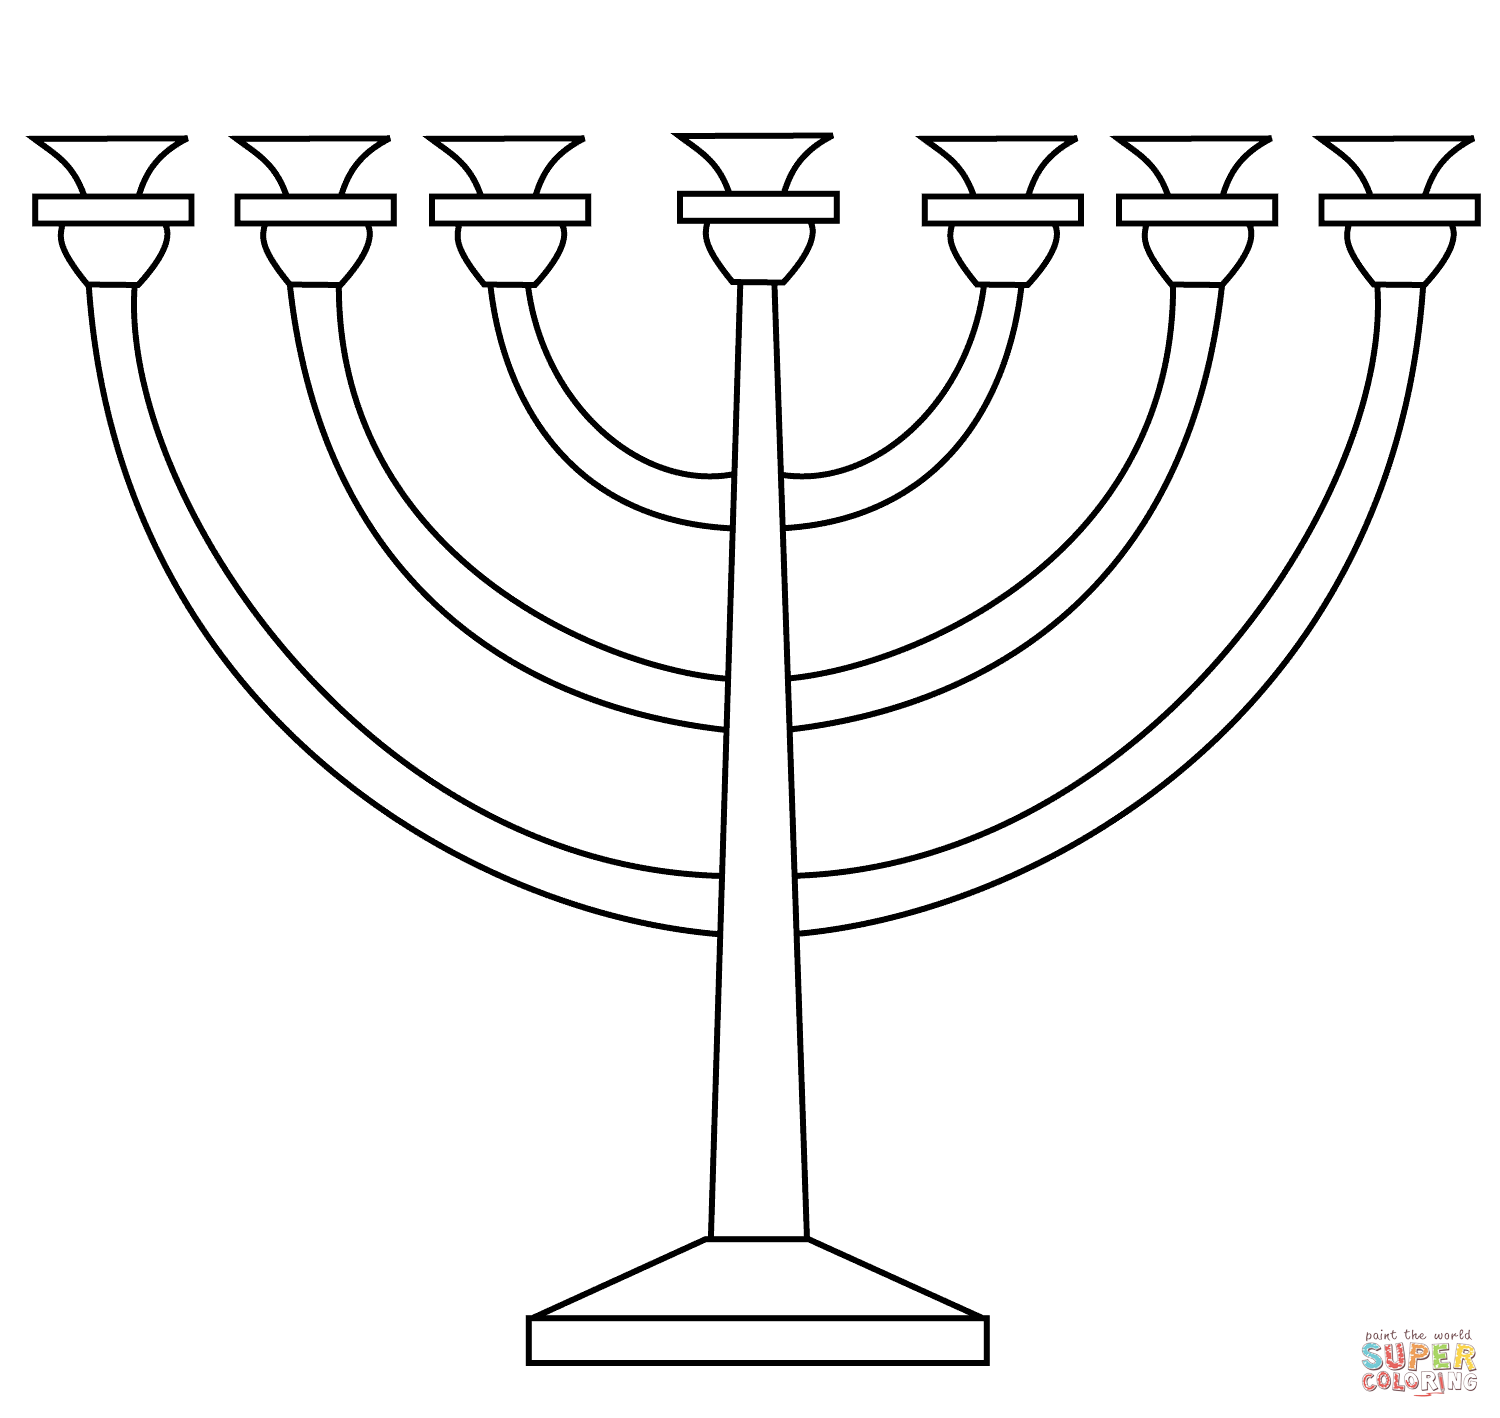 menorah coloring page the best free menorah drawing images download from 118 menorah page coloring